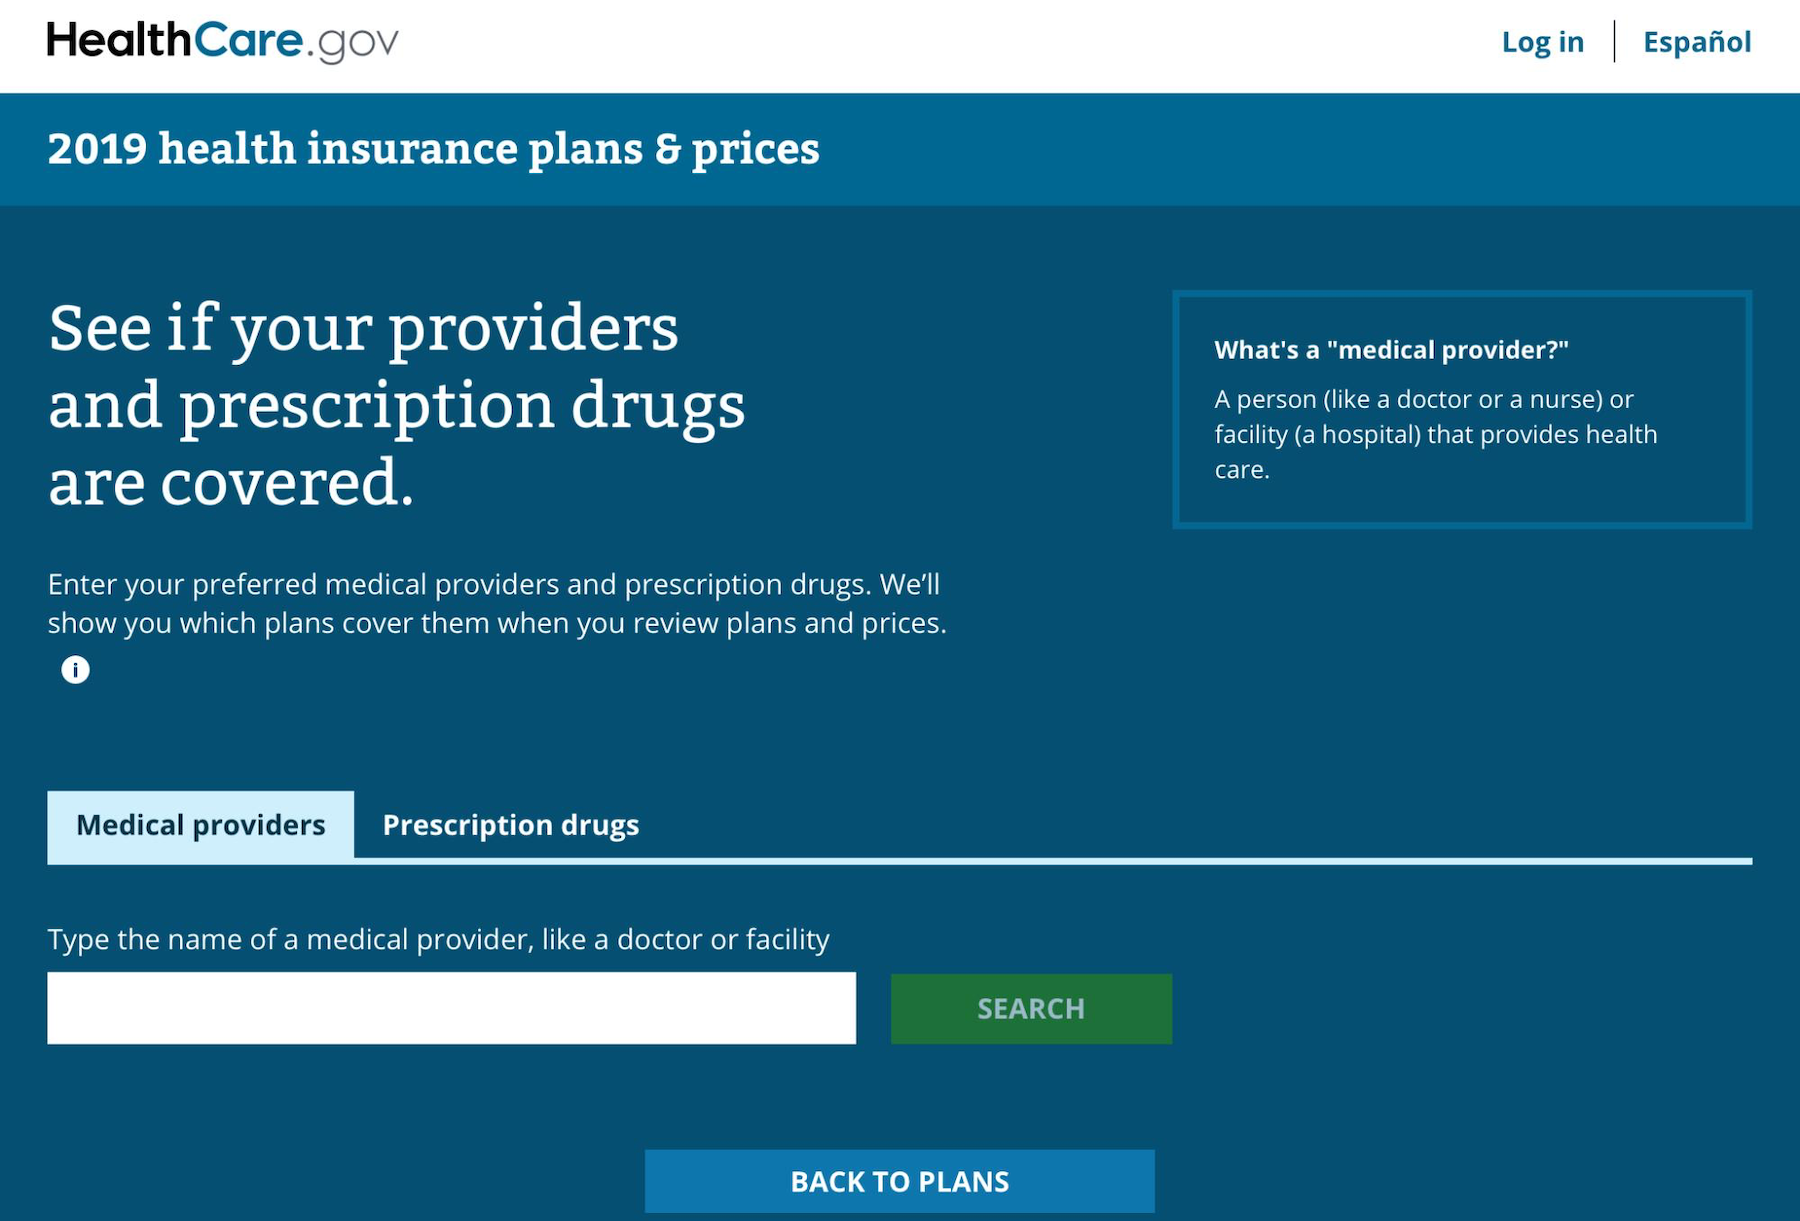 Screenshot of the Drug and provider search tools on HealthCare.gov